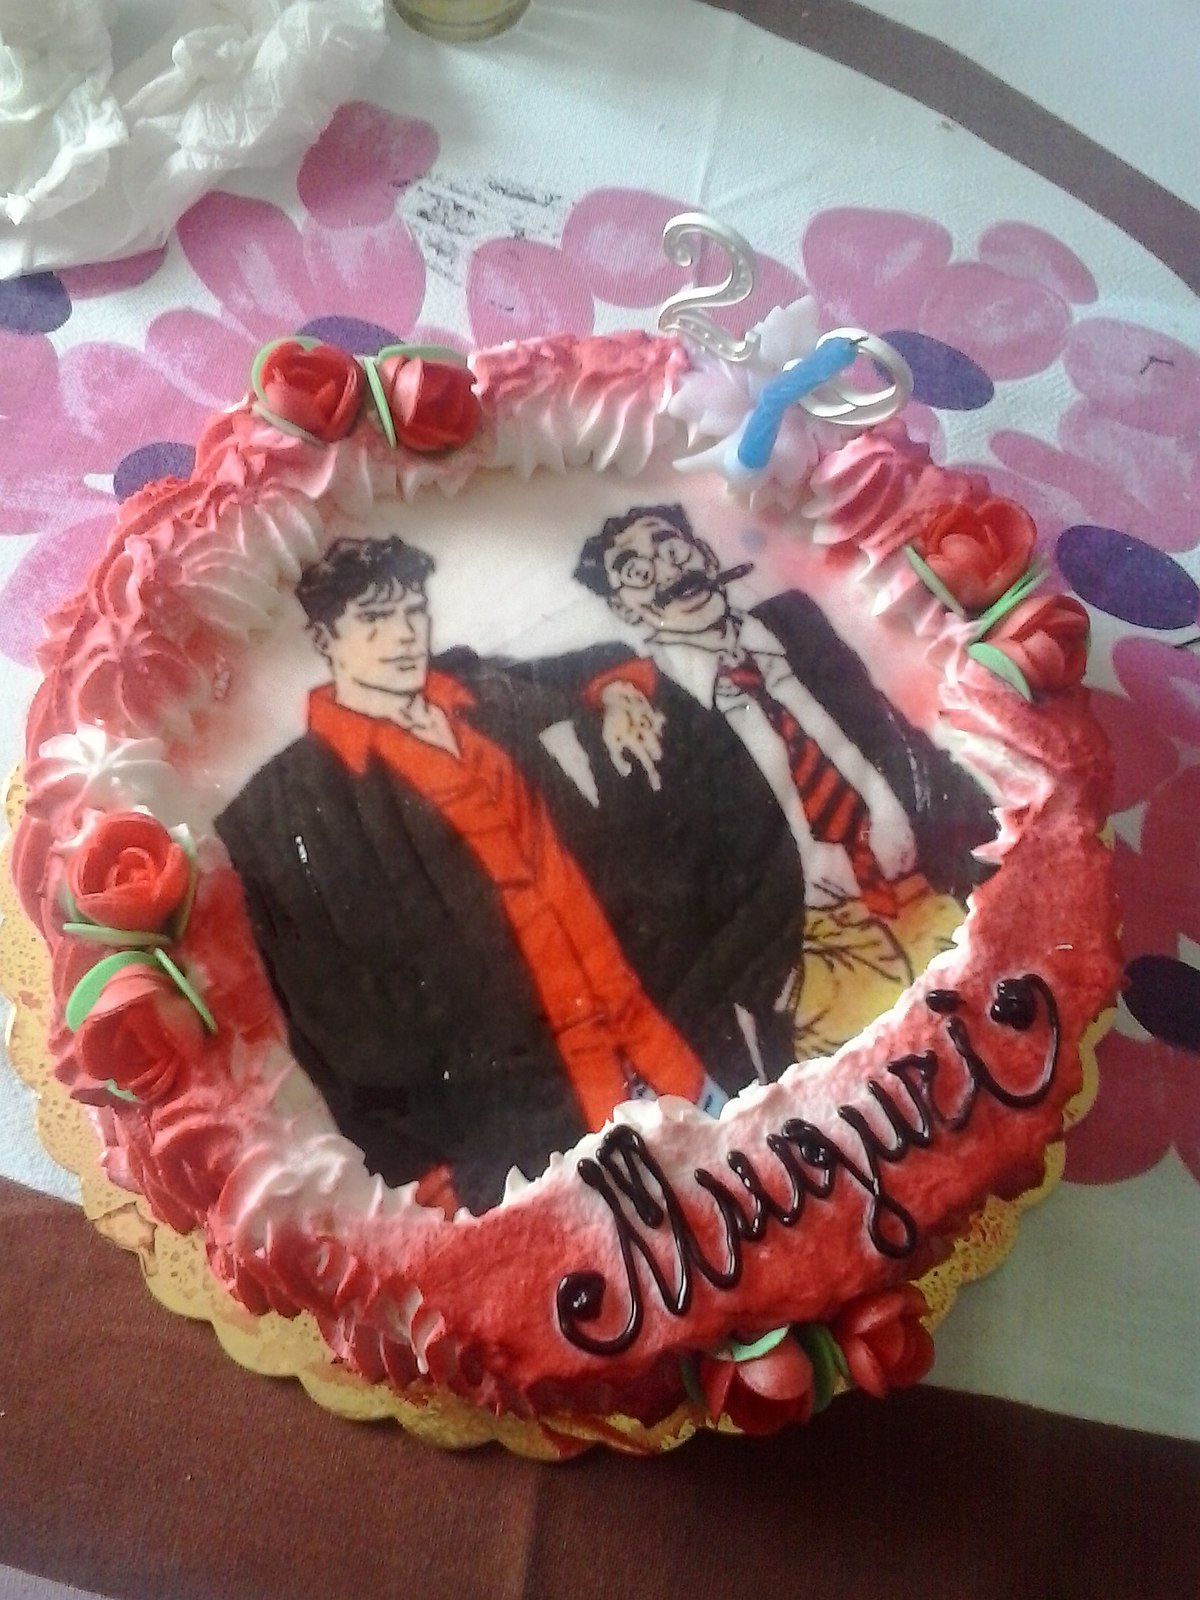 Incredible File Birthday Cake Of Dylan Dog 05 Wikimedia Commons Funny Birthday Cards Online Alyptdamsfinfo